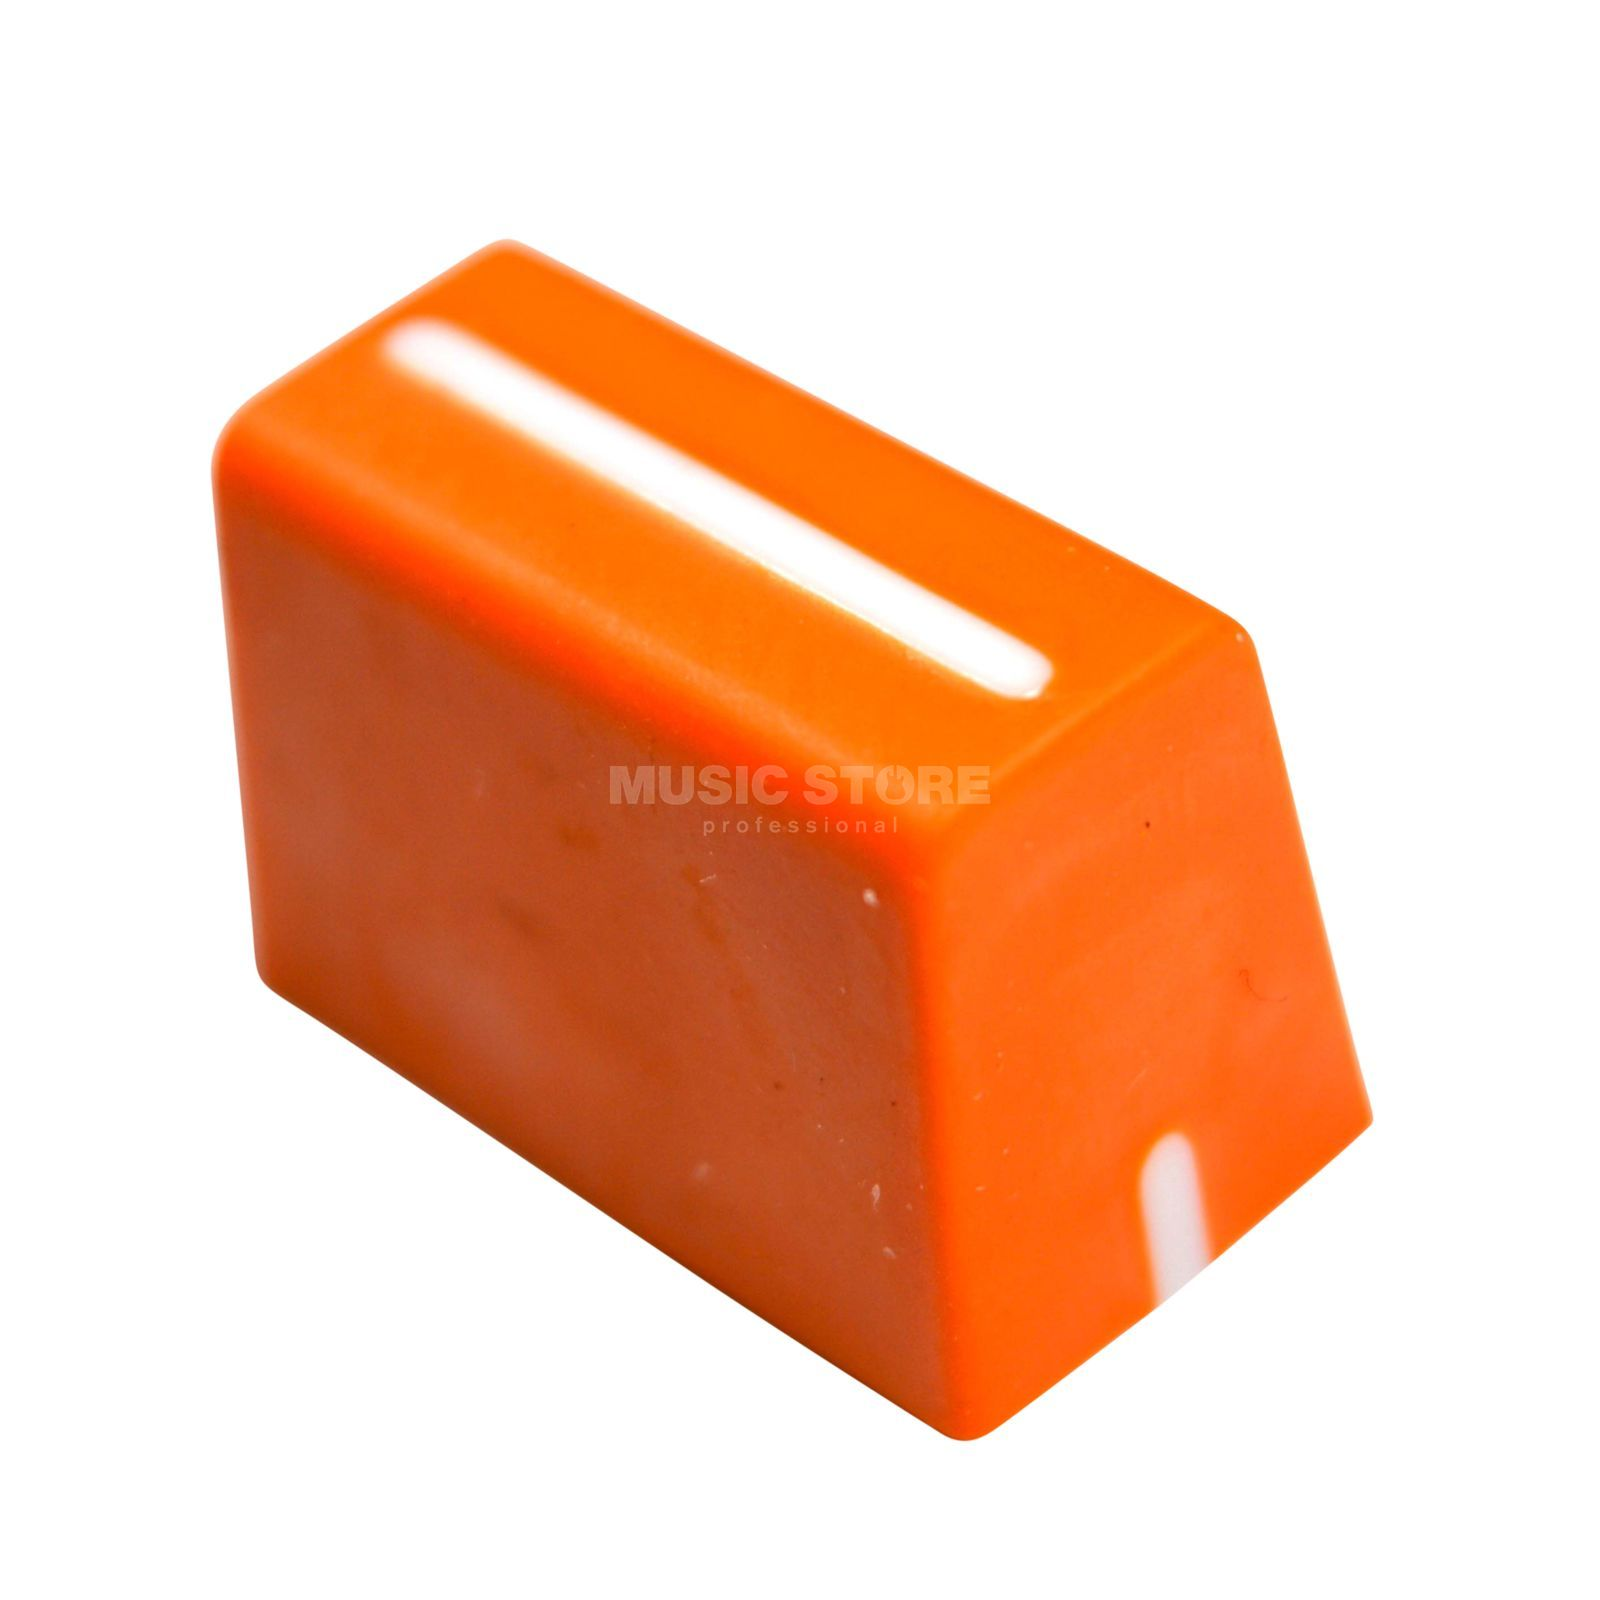 DJ TECHTOOLS Chroma Caps Fader orange  Product Image